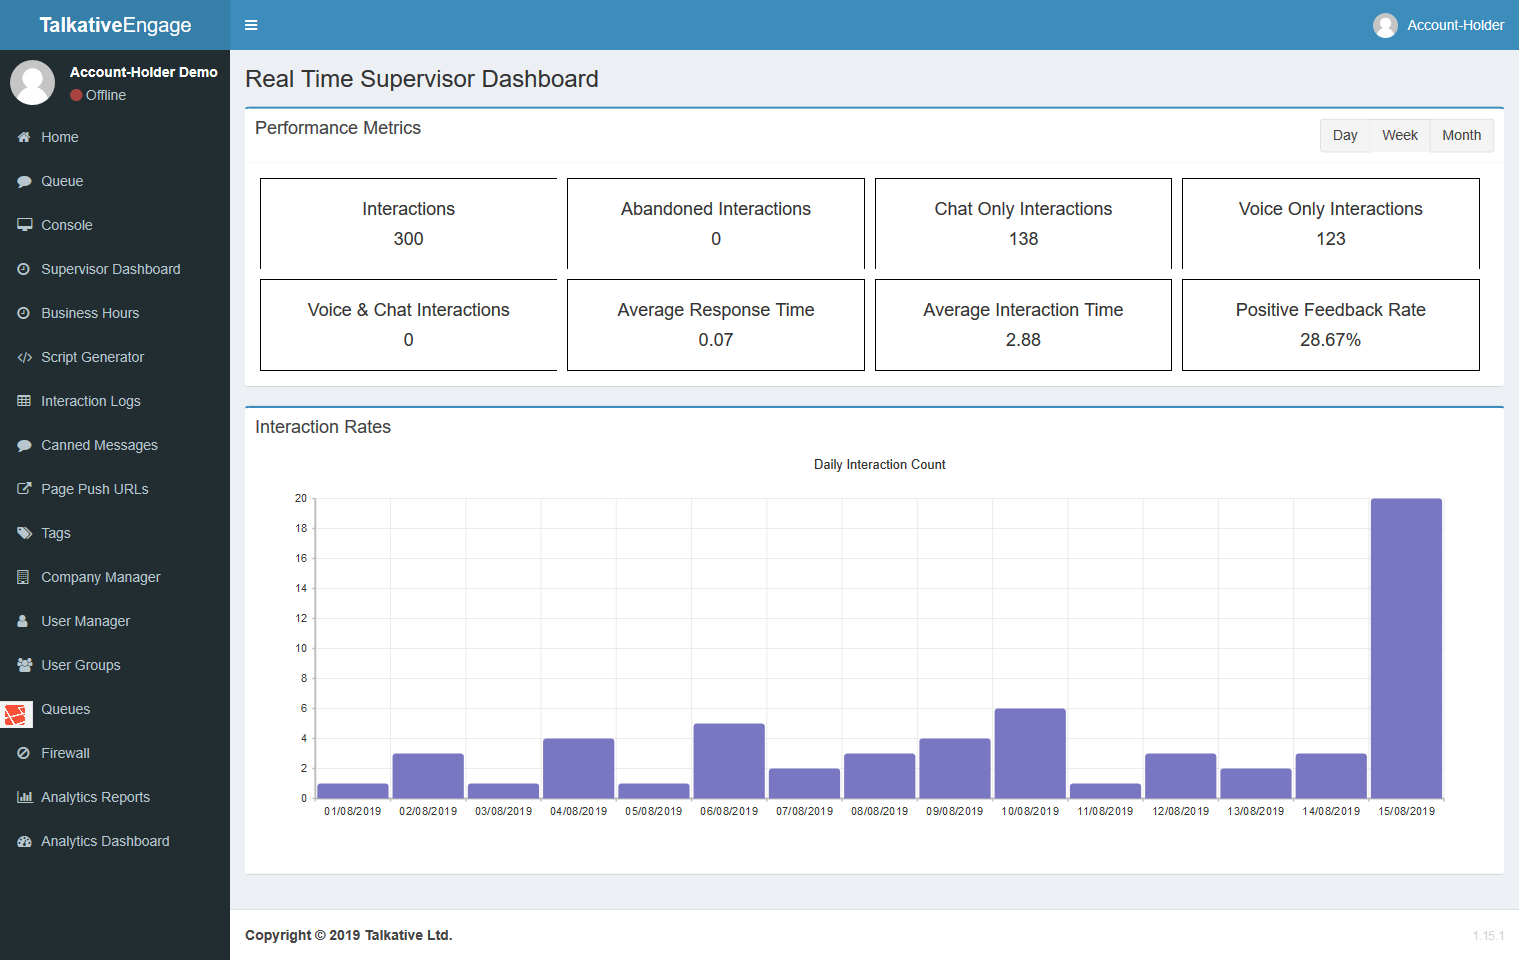 Talkative Engage real-time supervisor dashboard